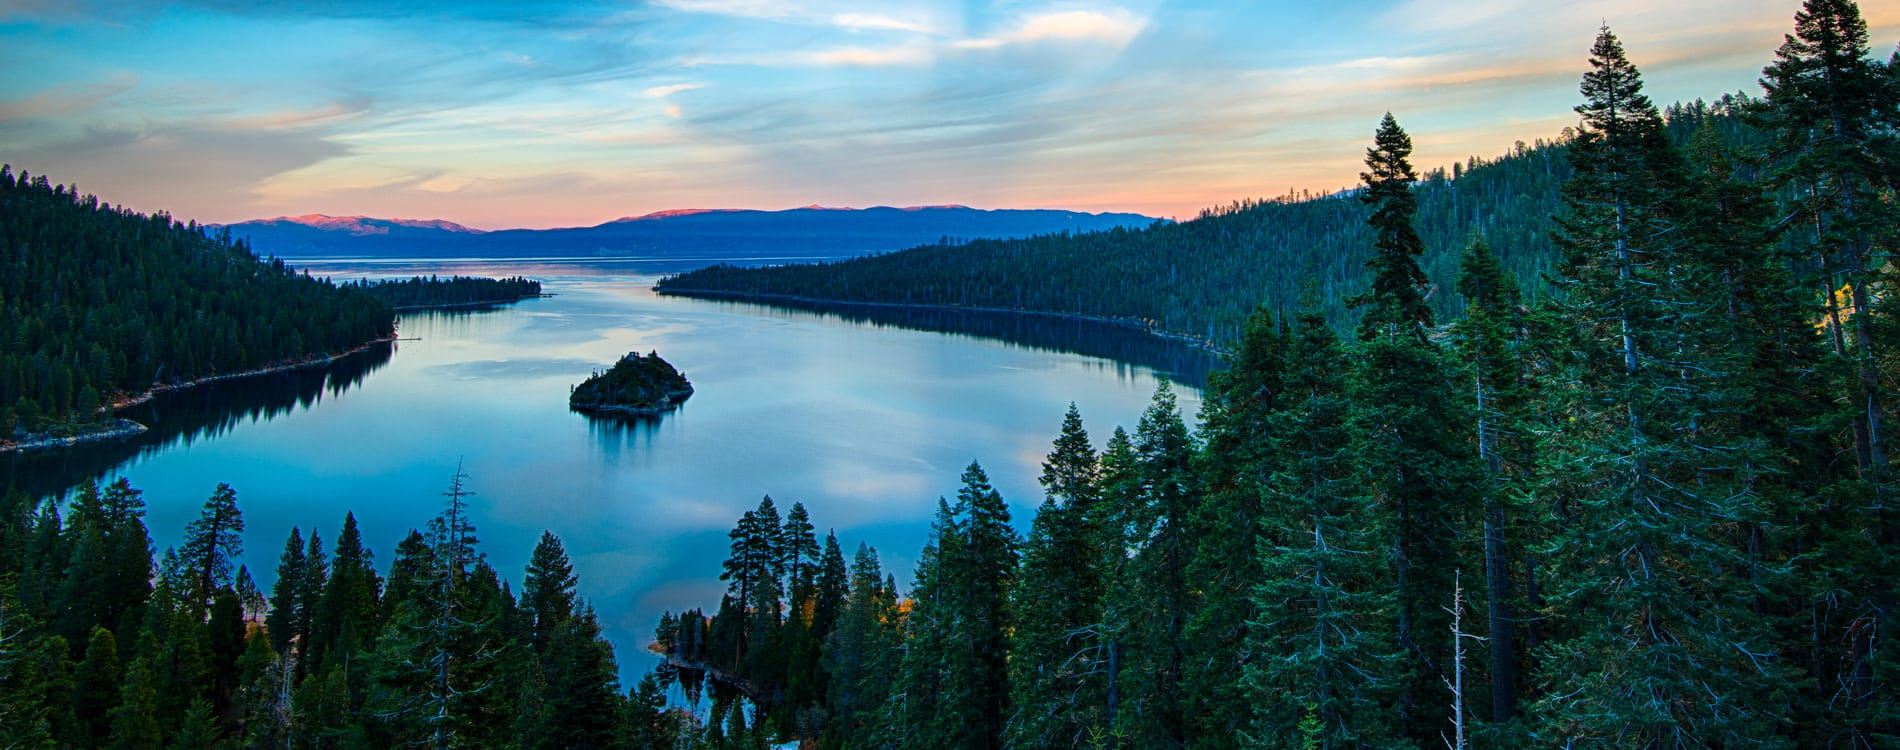 Sunrise at Emerald Bay in Lake Tahoe